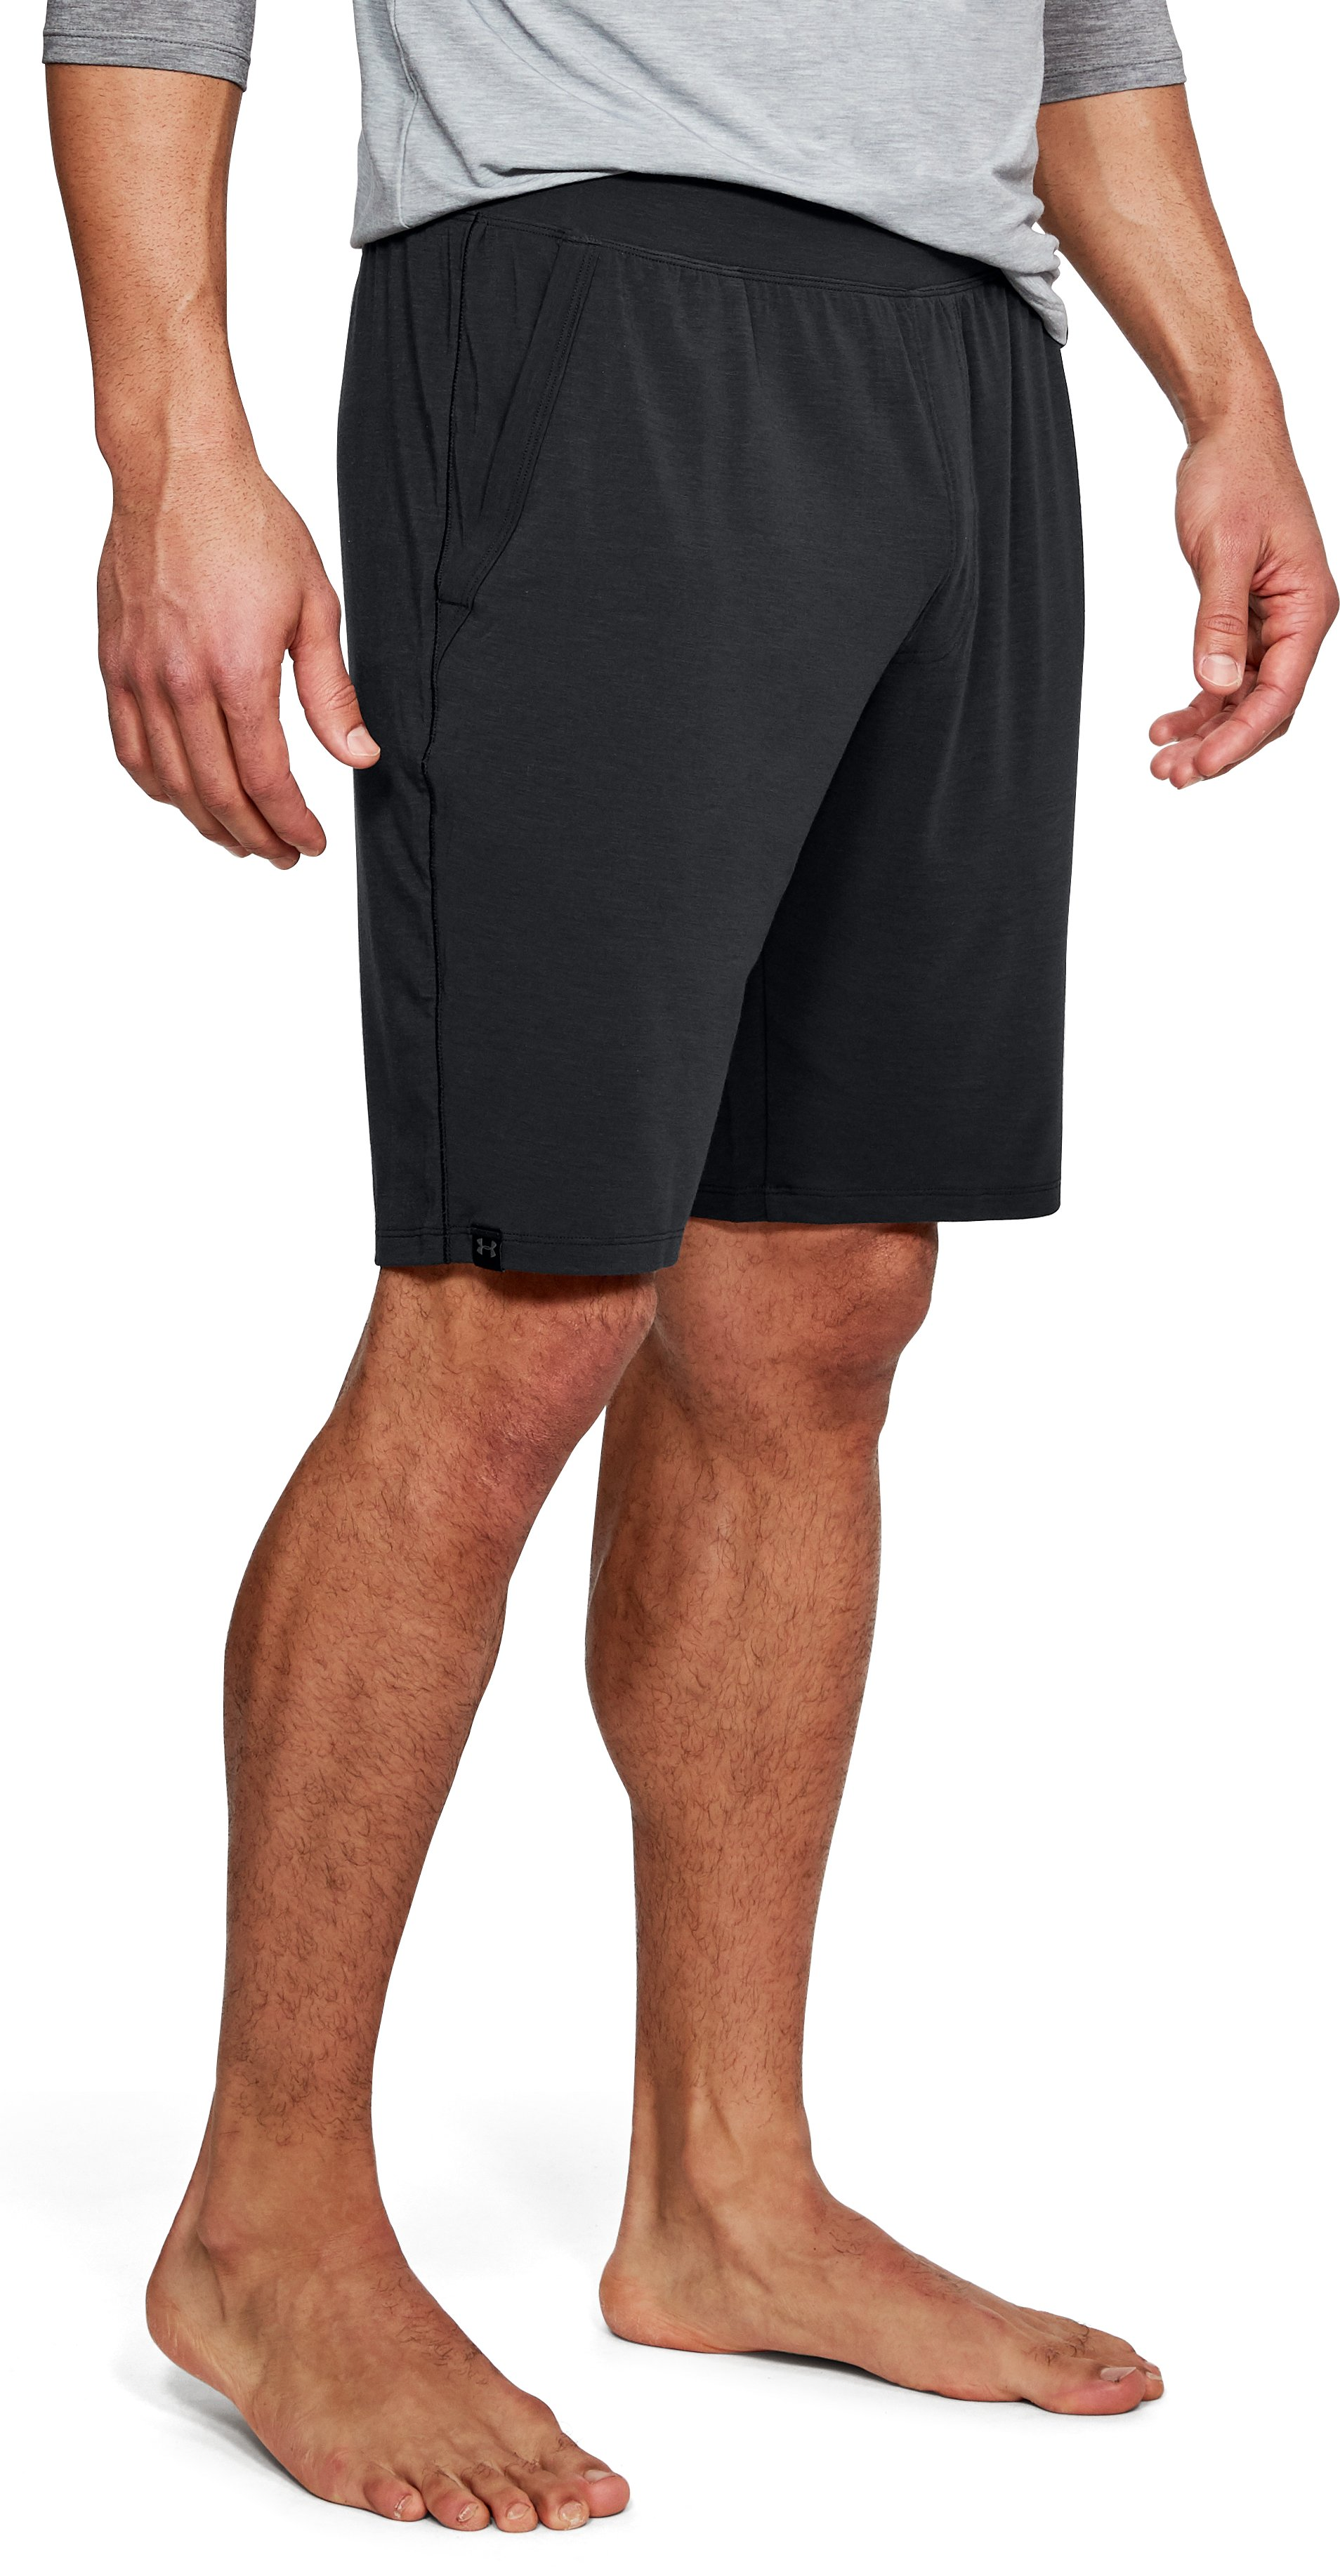 Men's Athlete Recovery Sleepwear Shorts, Black ,